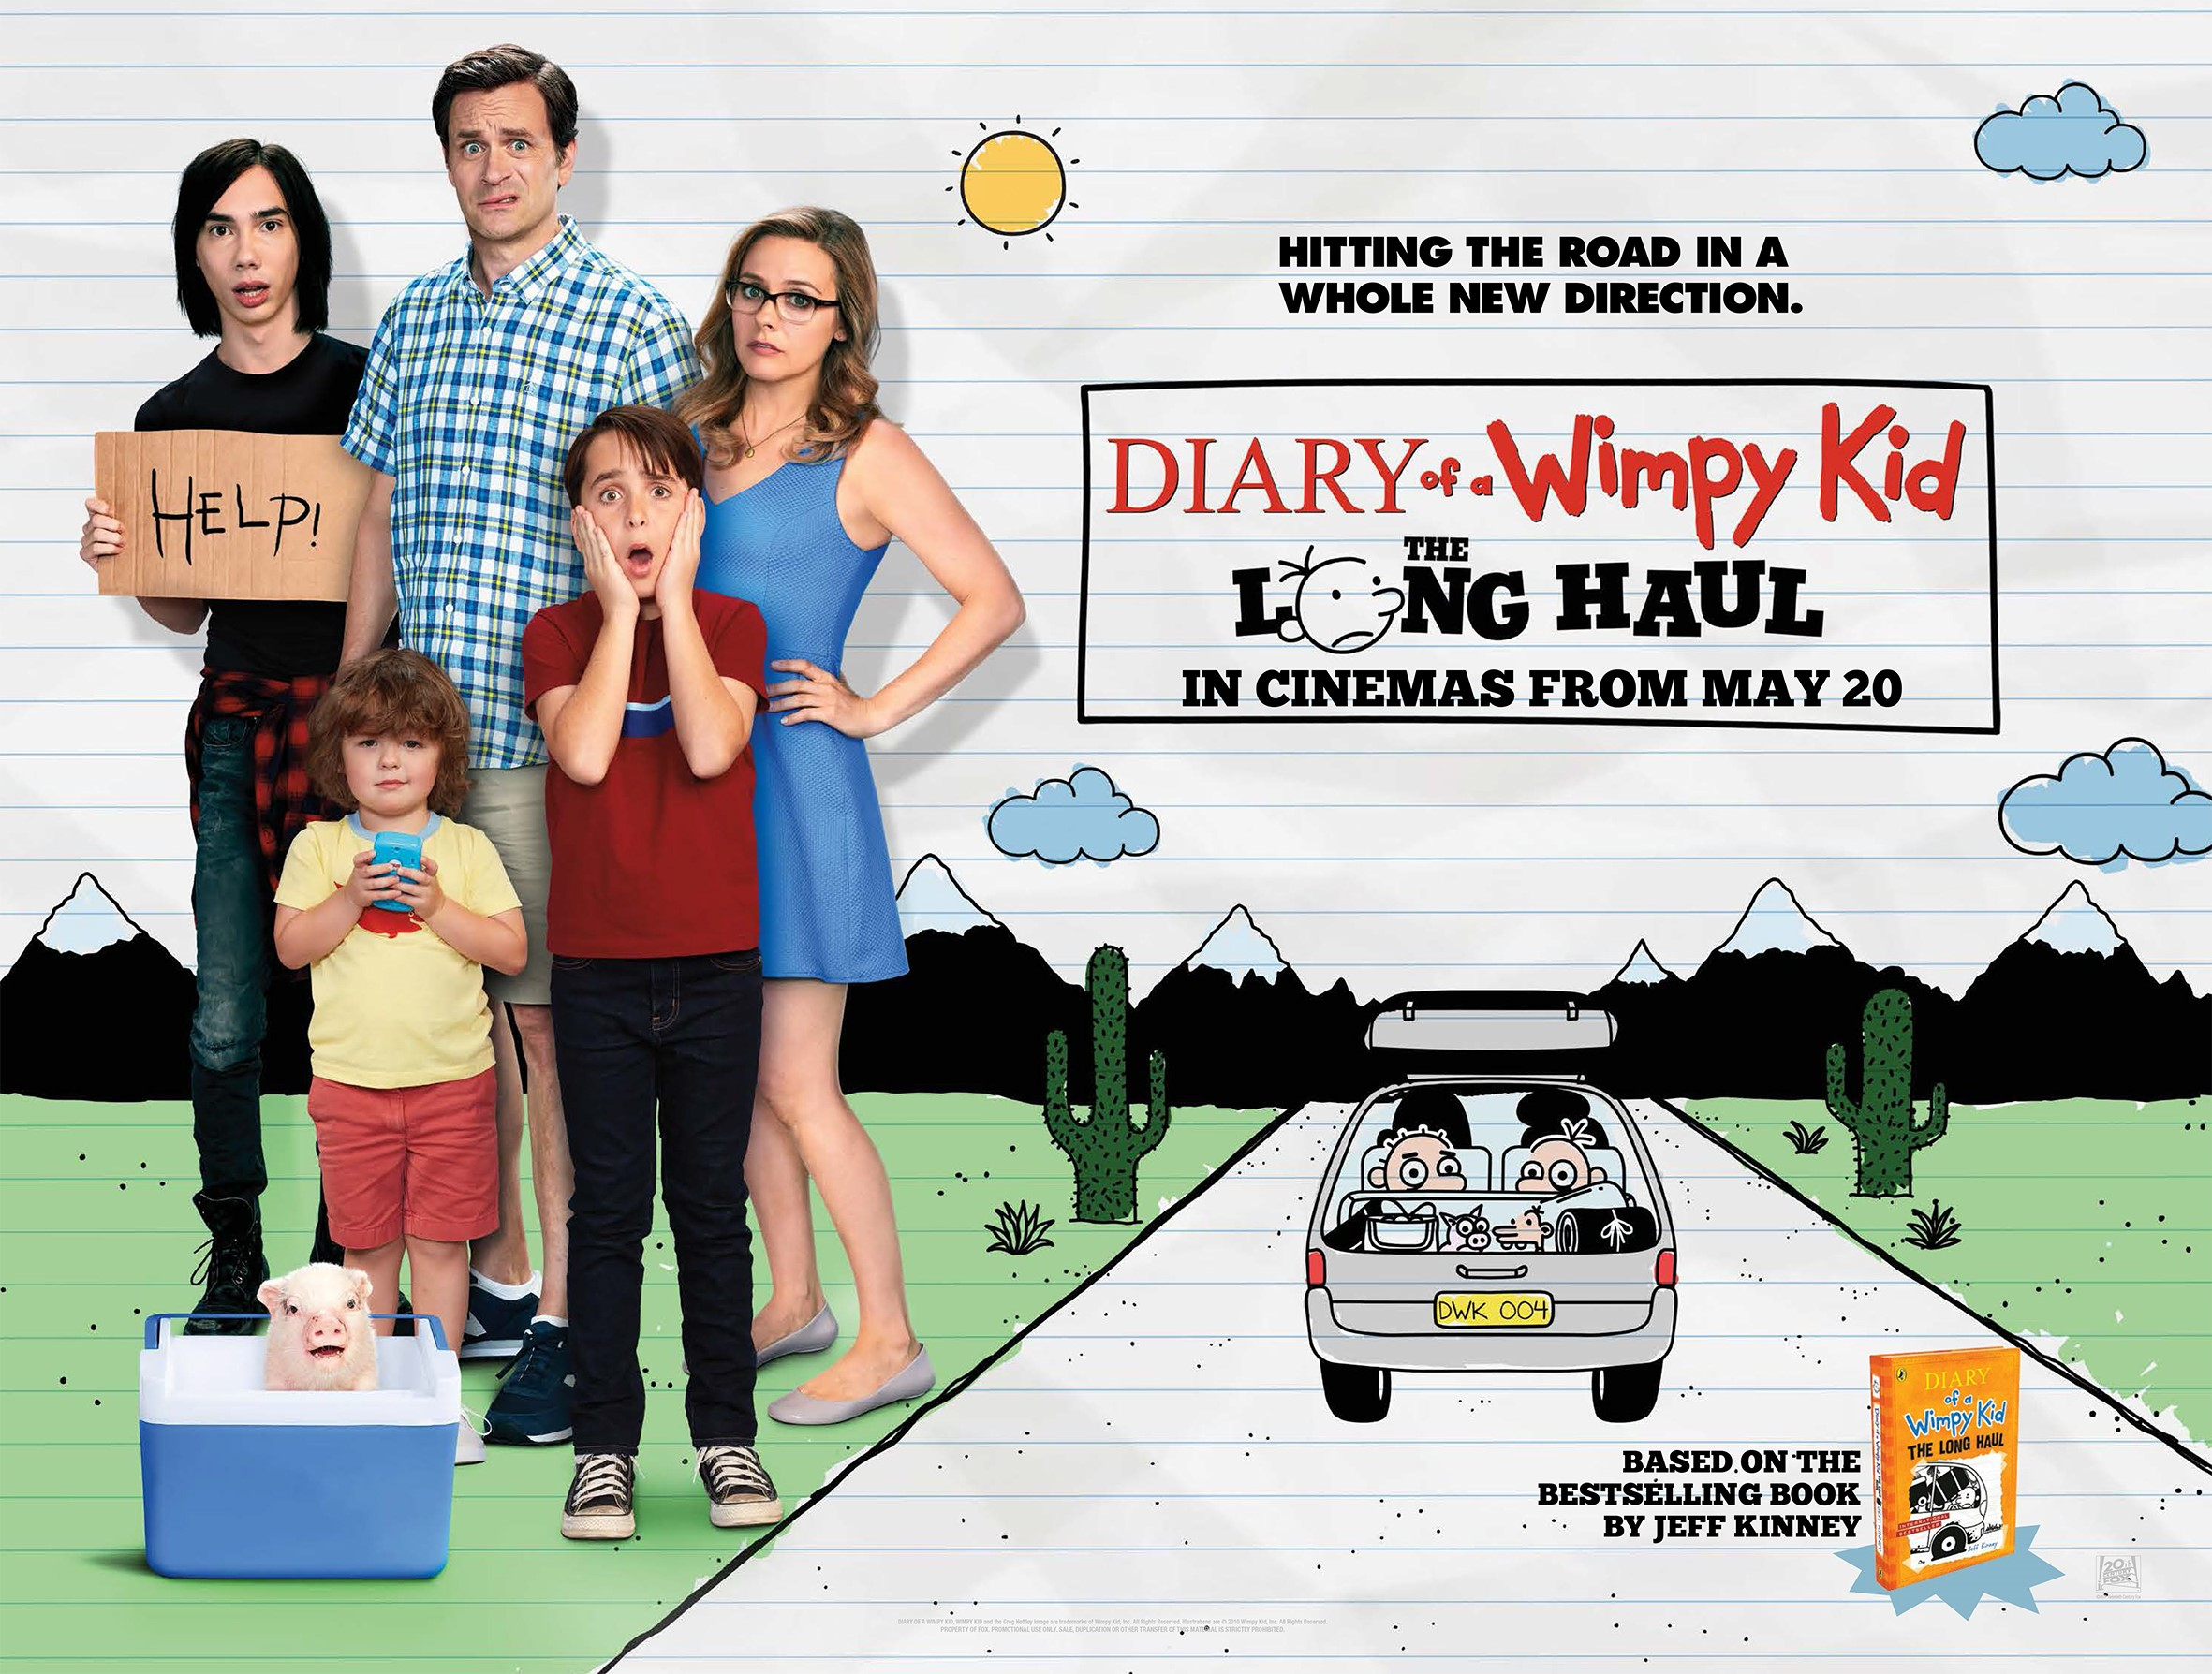 Diary Of A Wimpy Kid The Long Haul Review Den Of Geek